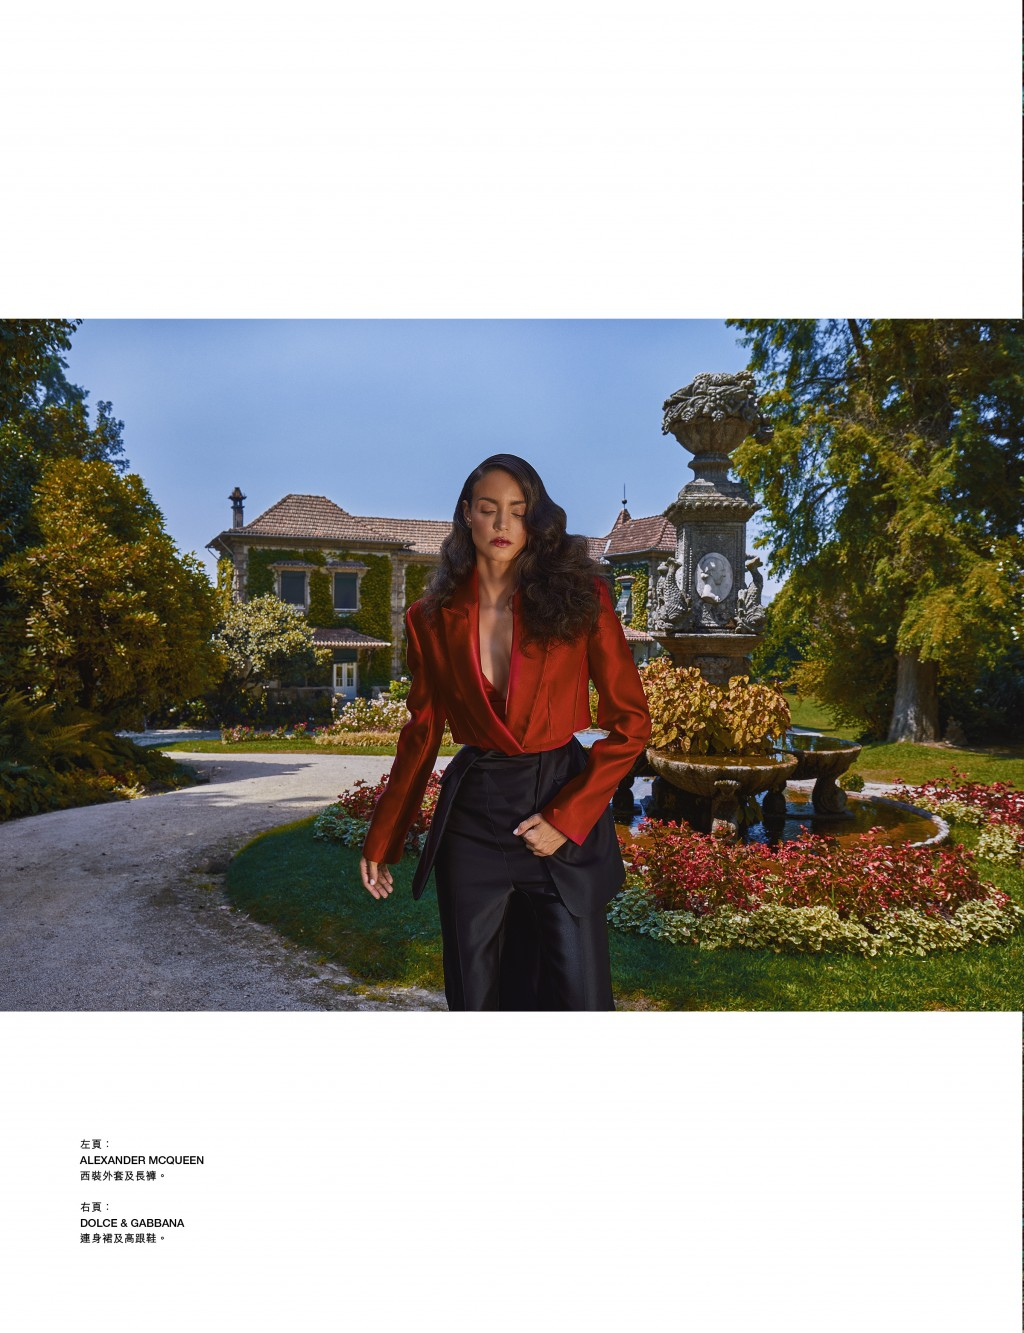 Vinho Verde and Aveleda's Gardens are Cover for Harper's Bazaar